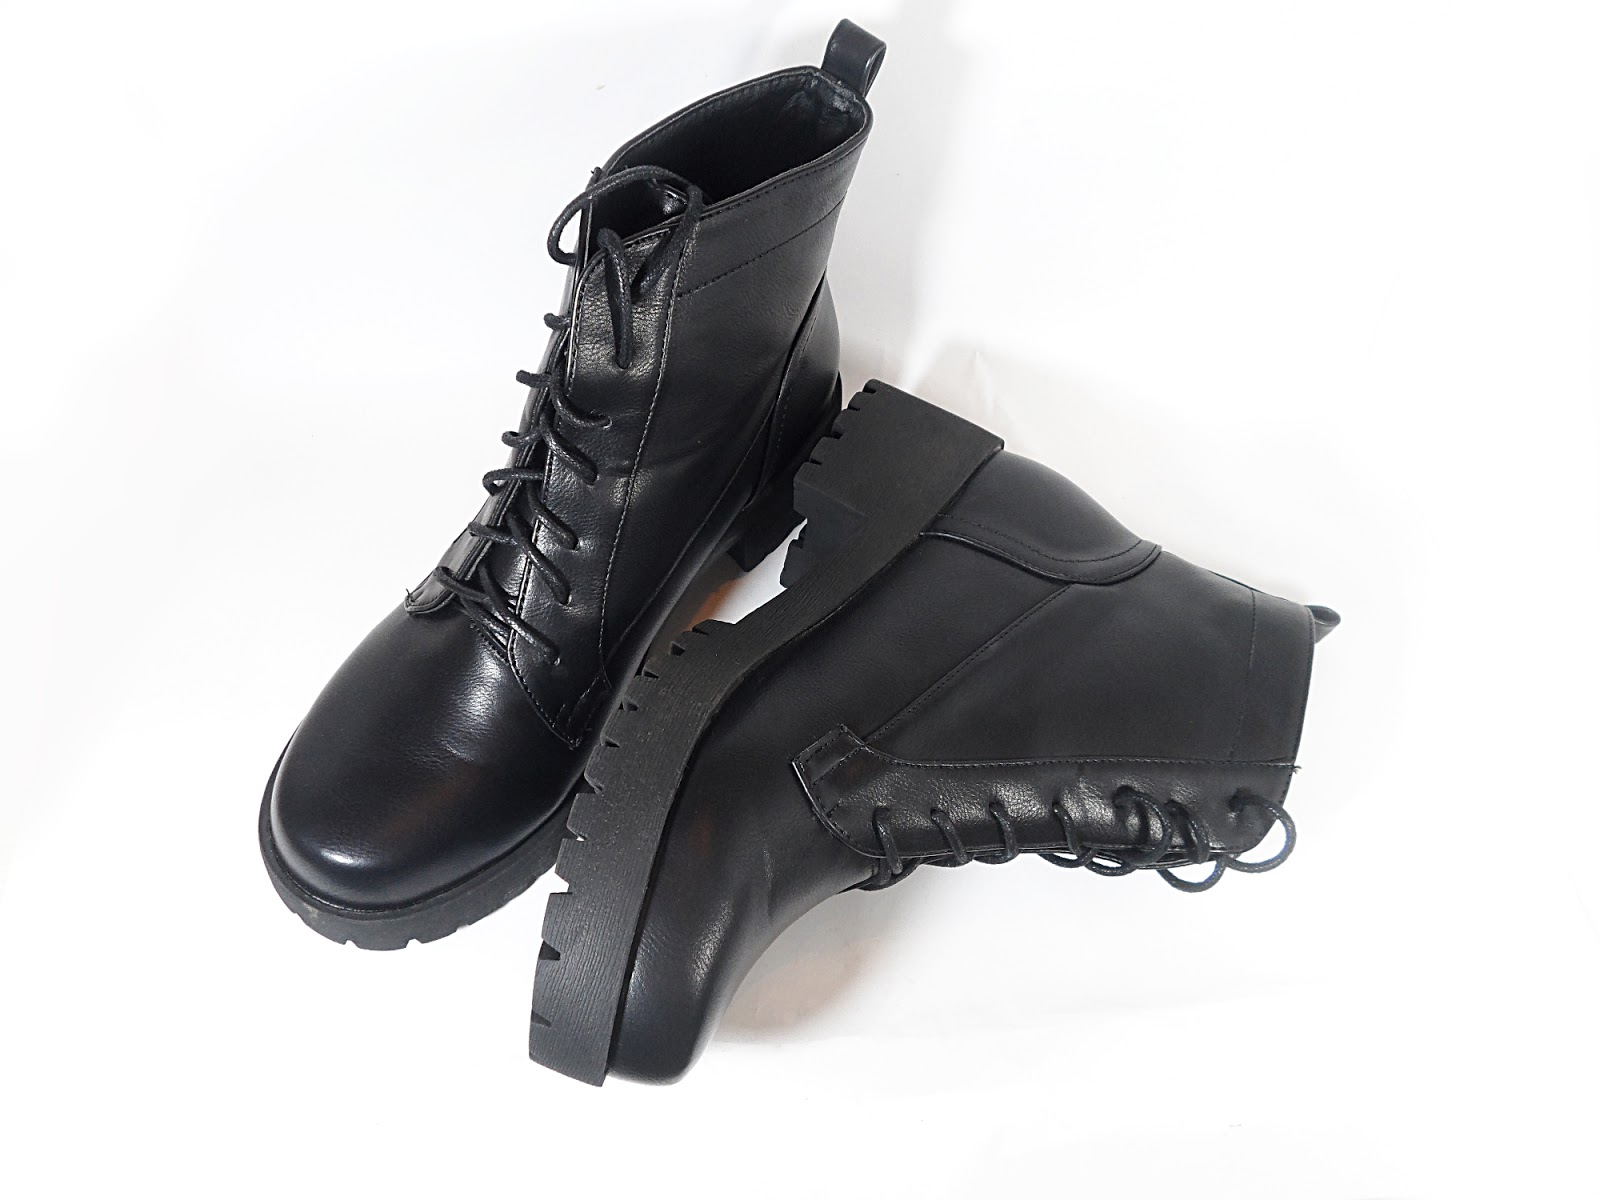 zaful cobra combat ankle boots review black friday